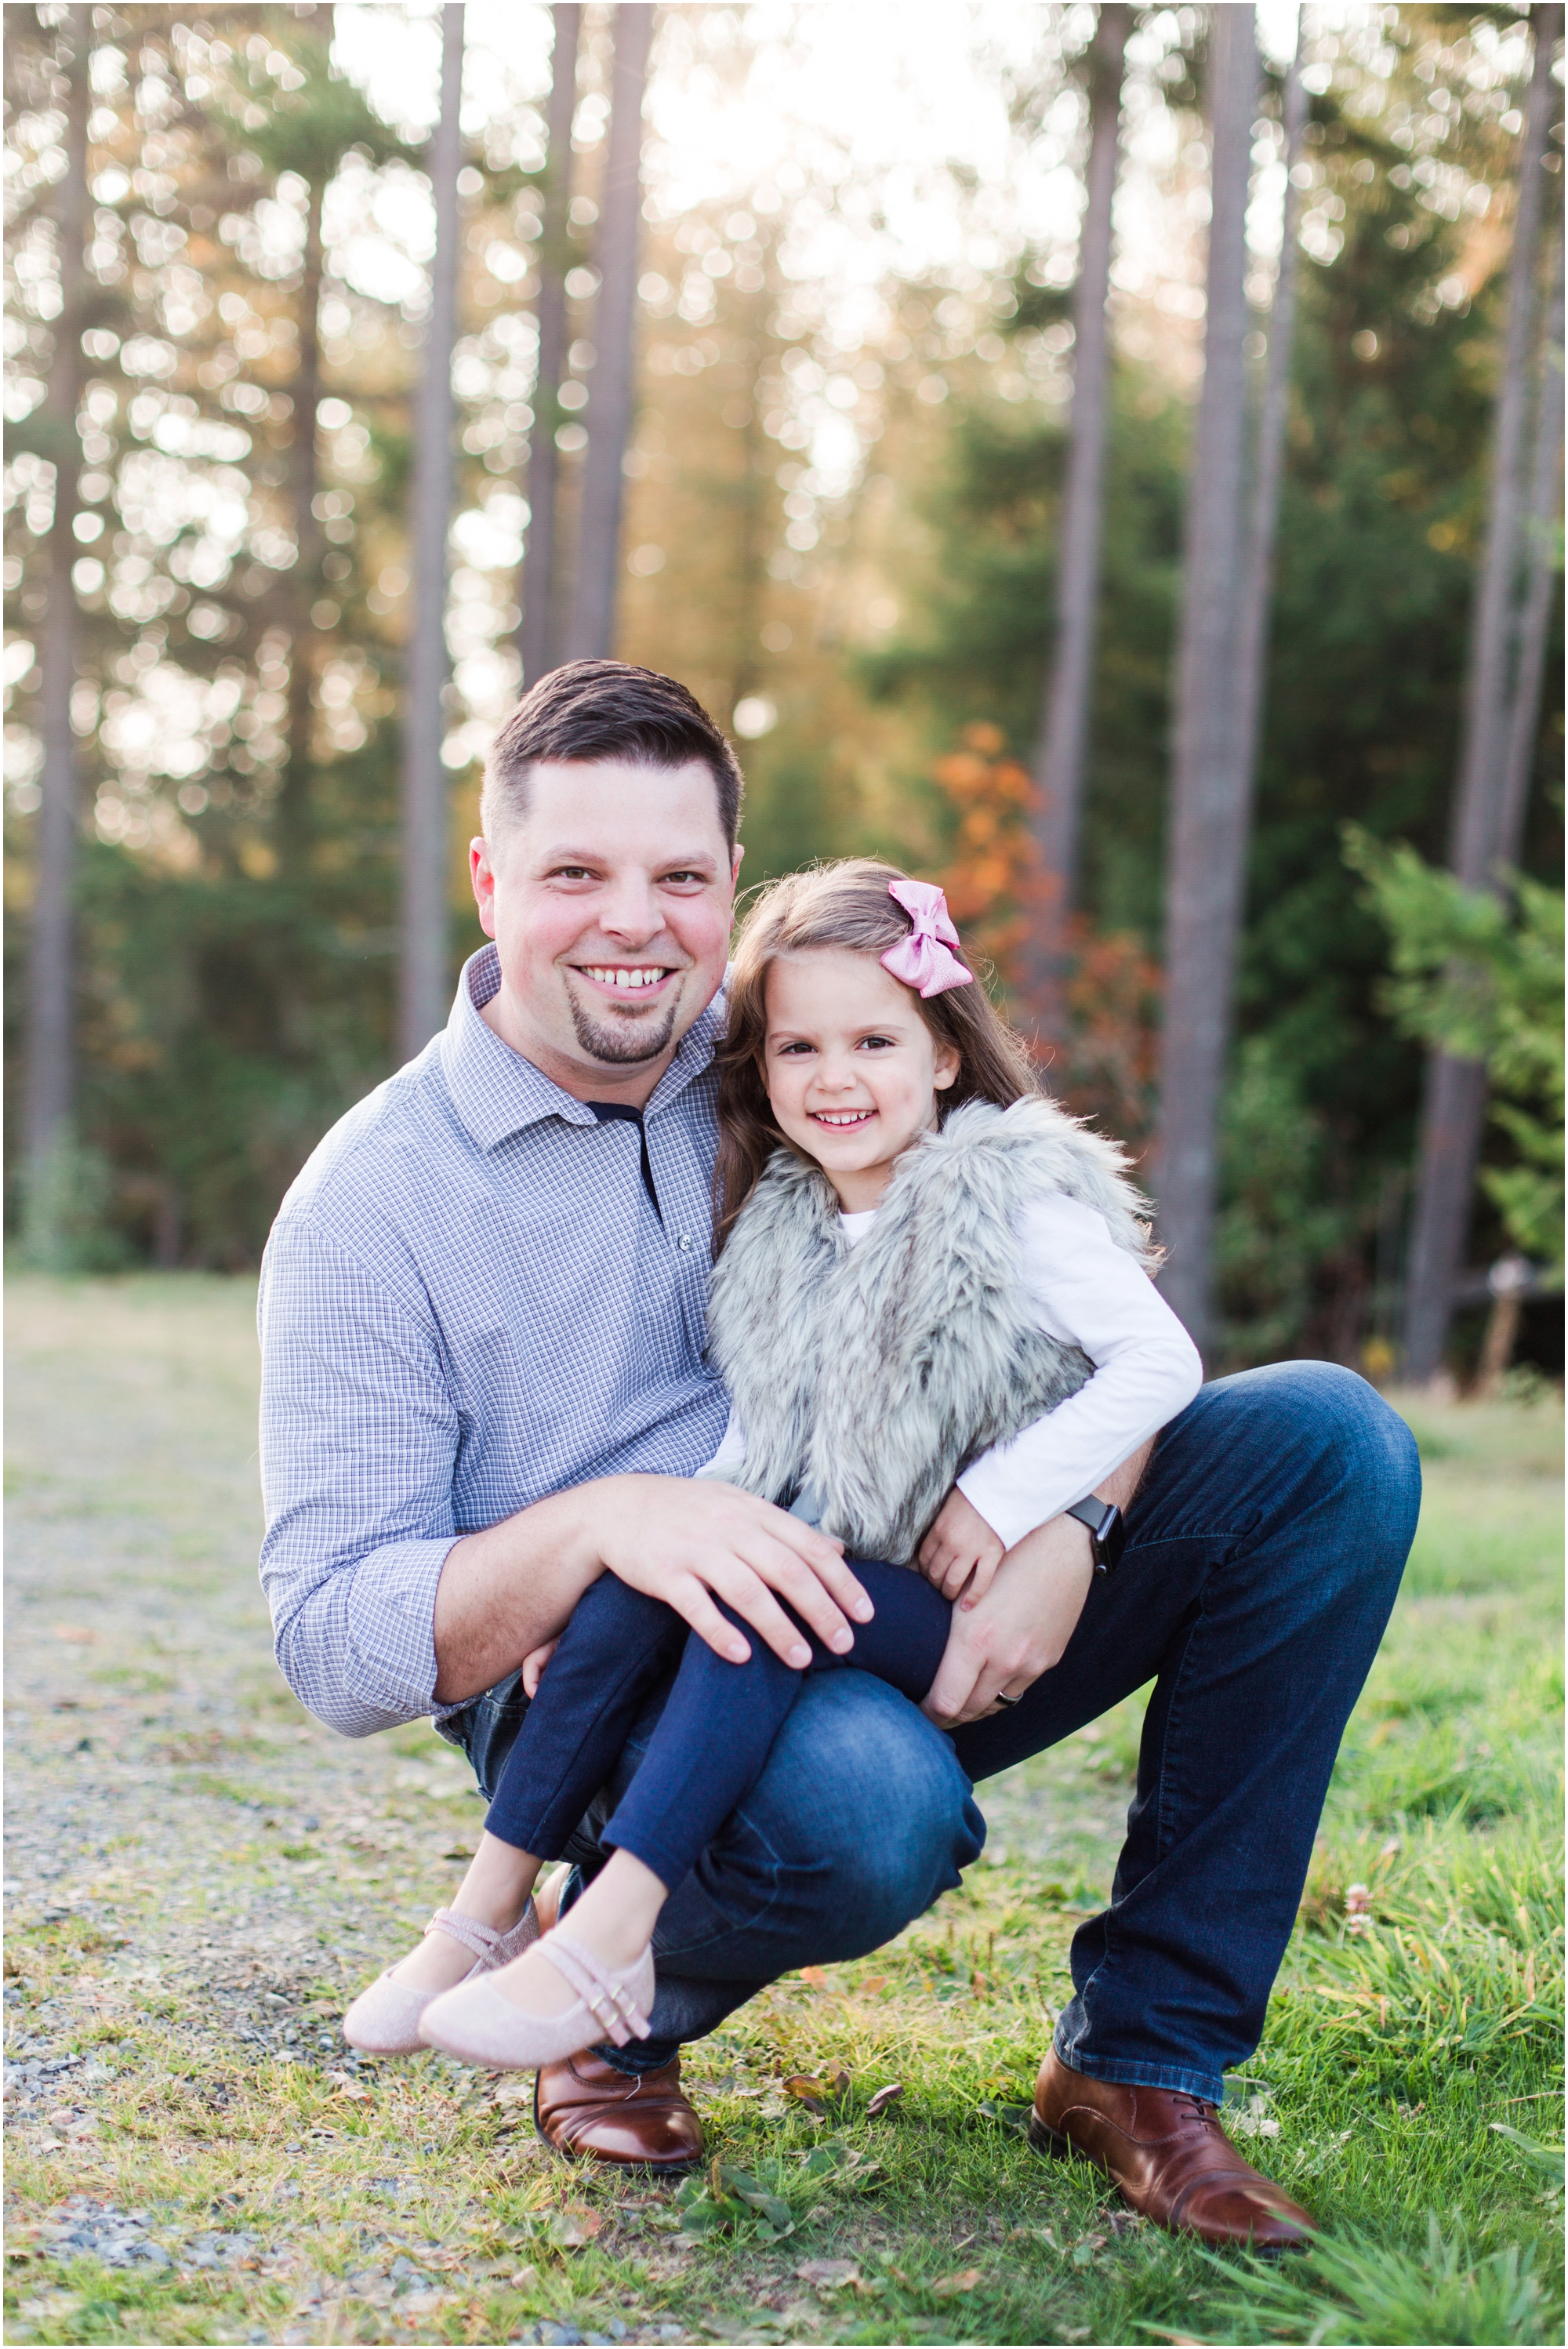 Fall family pictures by Briana Calderon Photography based in the Greater Seattle & Tacoma, WA_0931.jpg